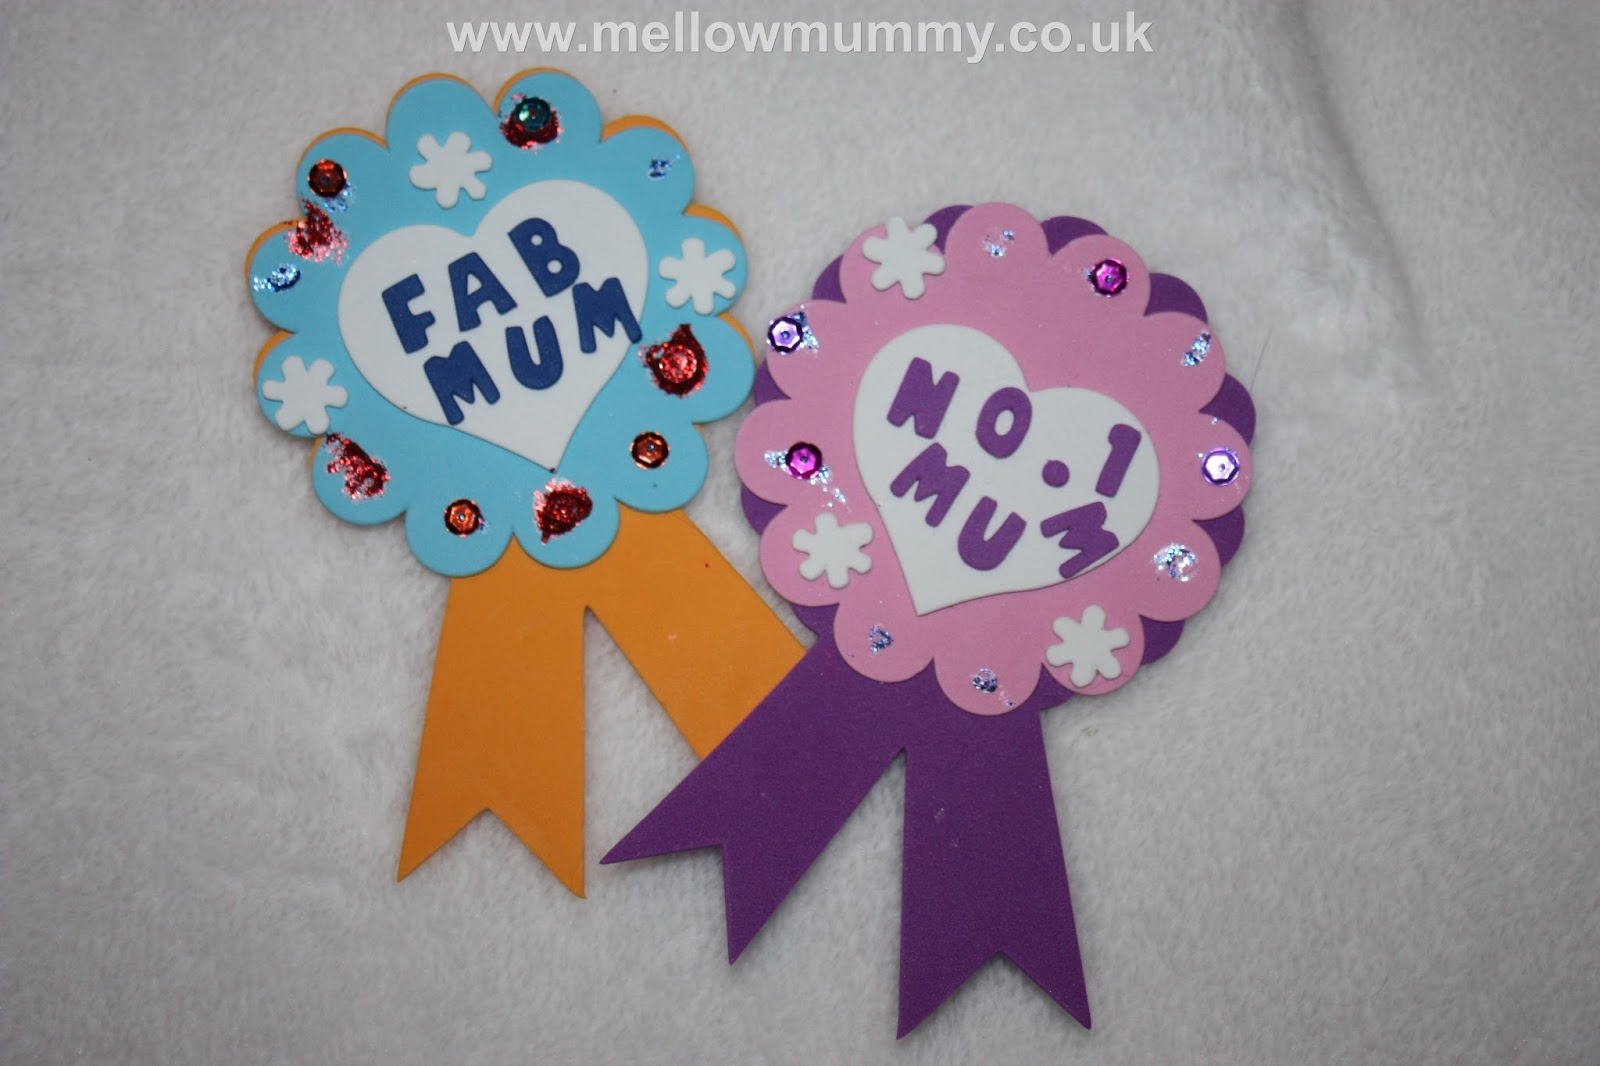 Mellow Mummy Mothers Day Craft Activities For Kids